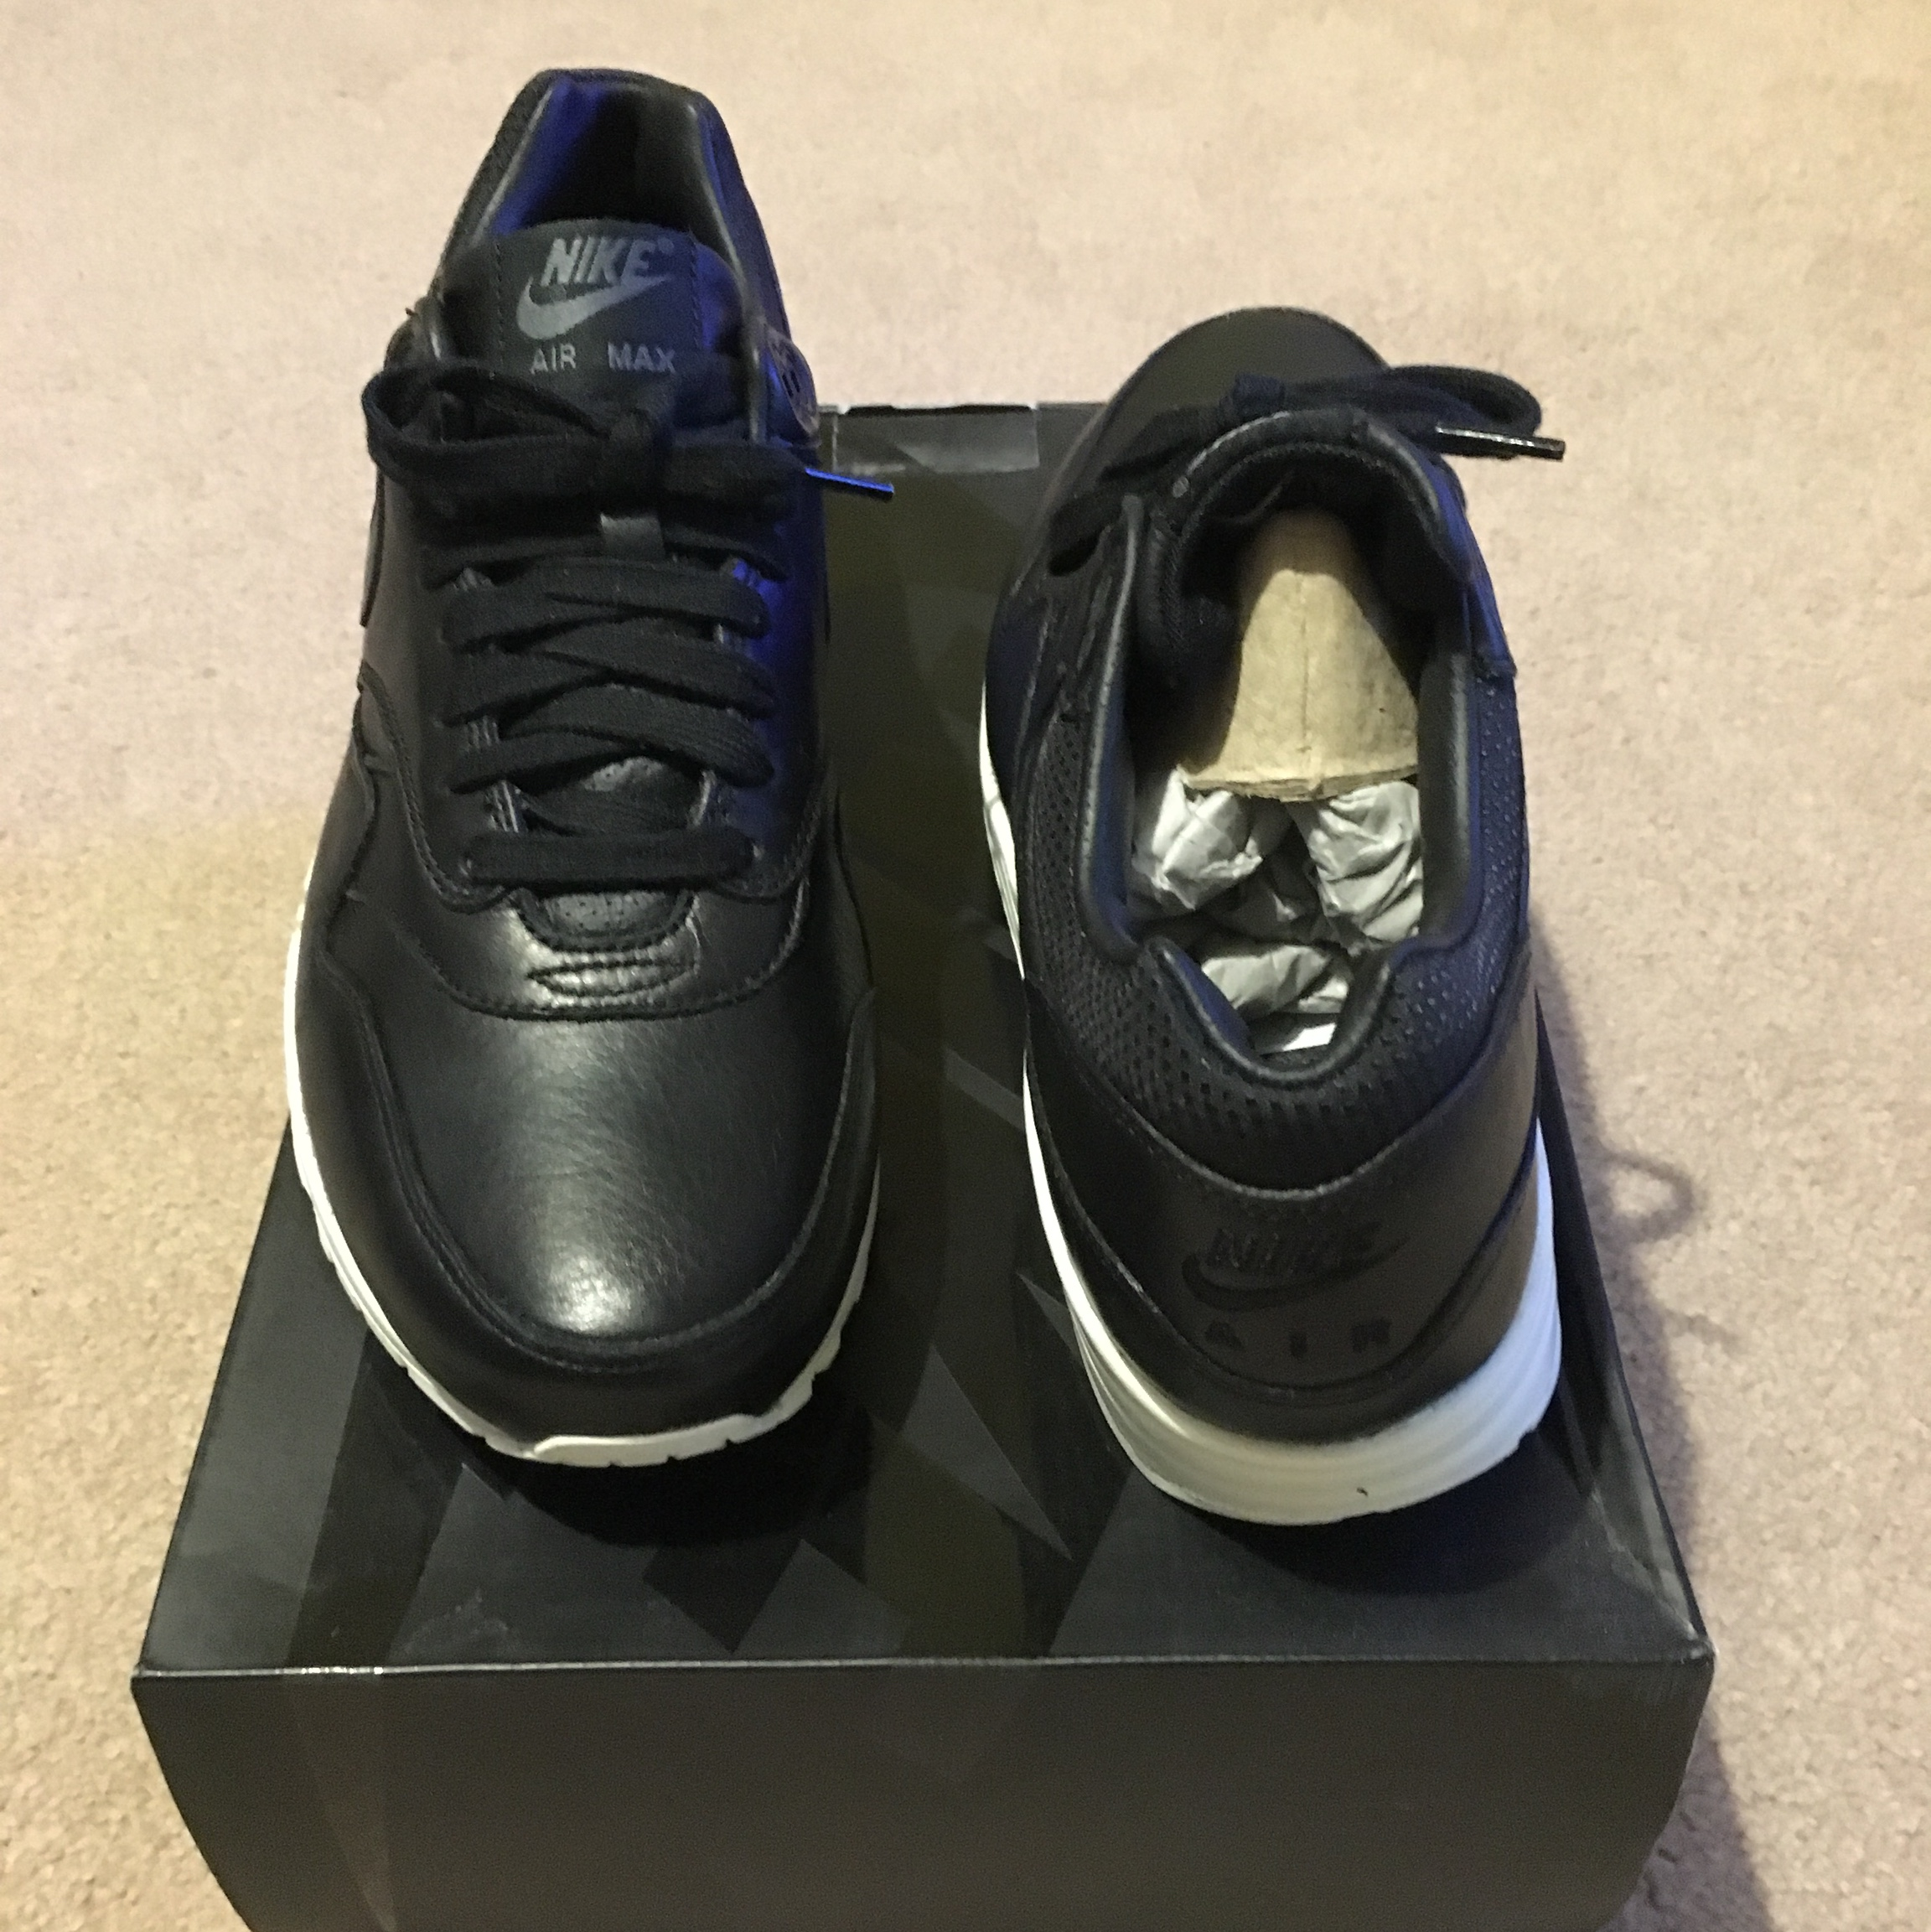 Nike Air Max 1 Air Max 1 Pinnacle black sail Depop